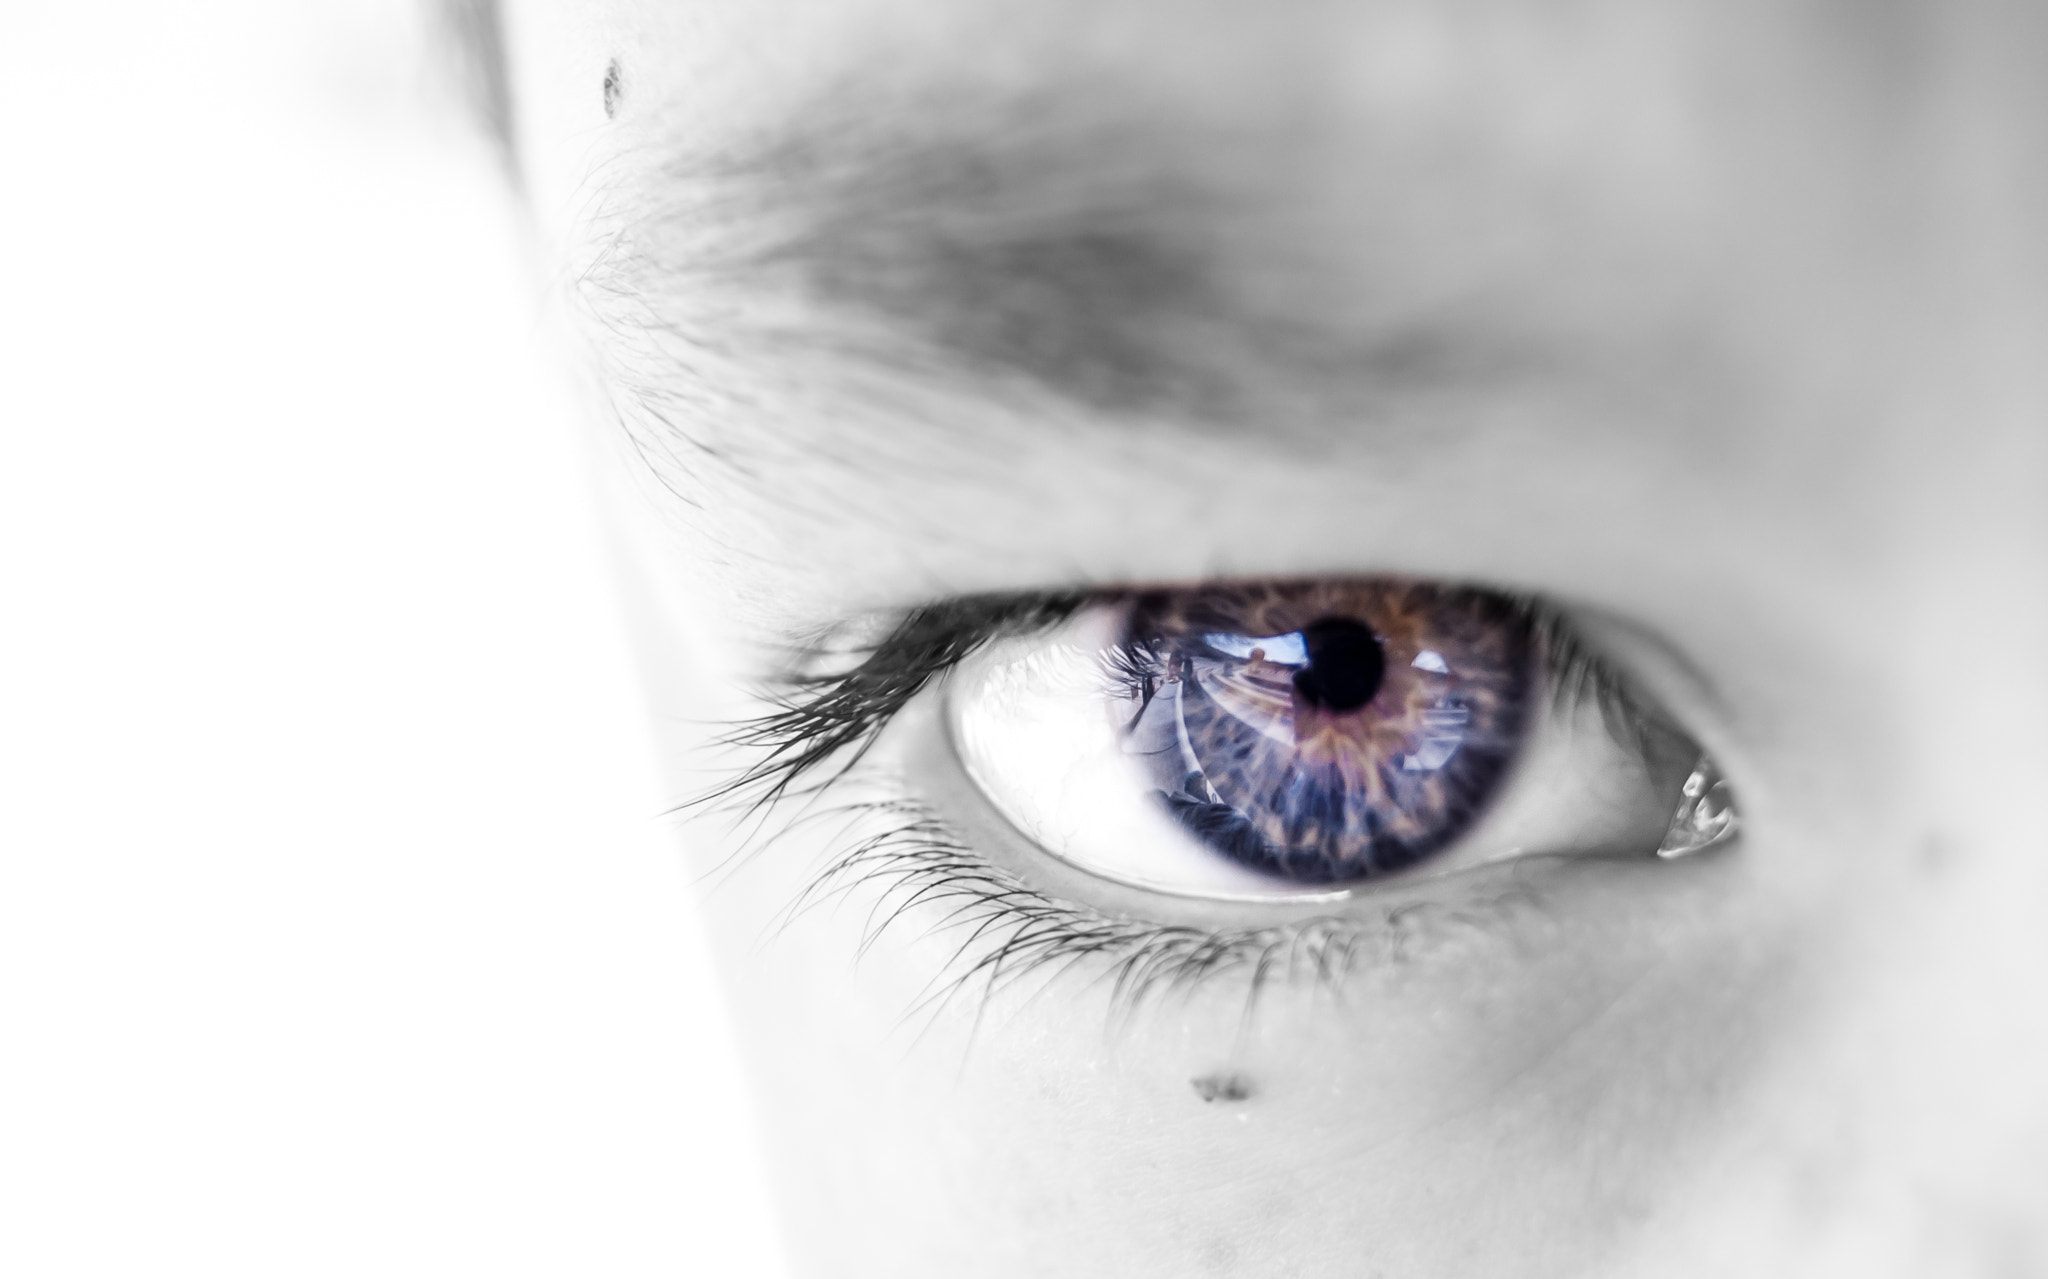 Photograph Eye by Faby Molina on 500px